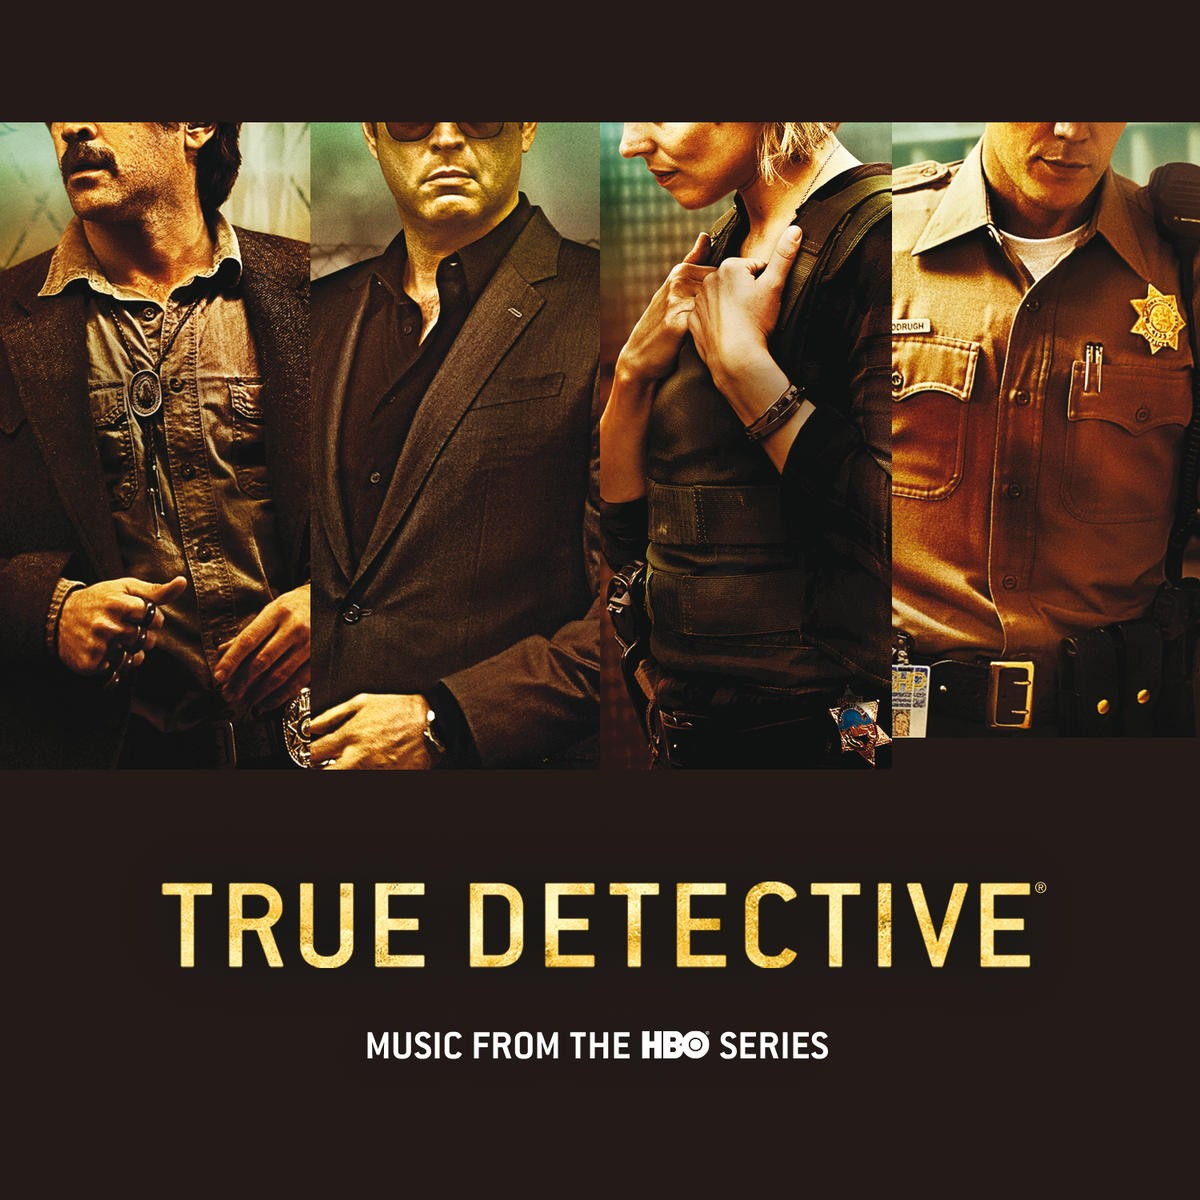 True Detective (Music From the HBO Series) CD - 06025 4743288